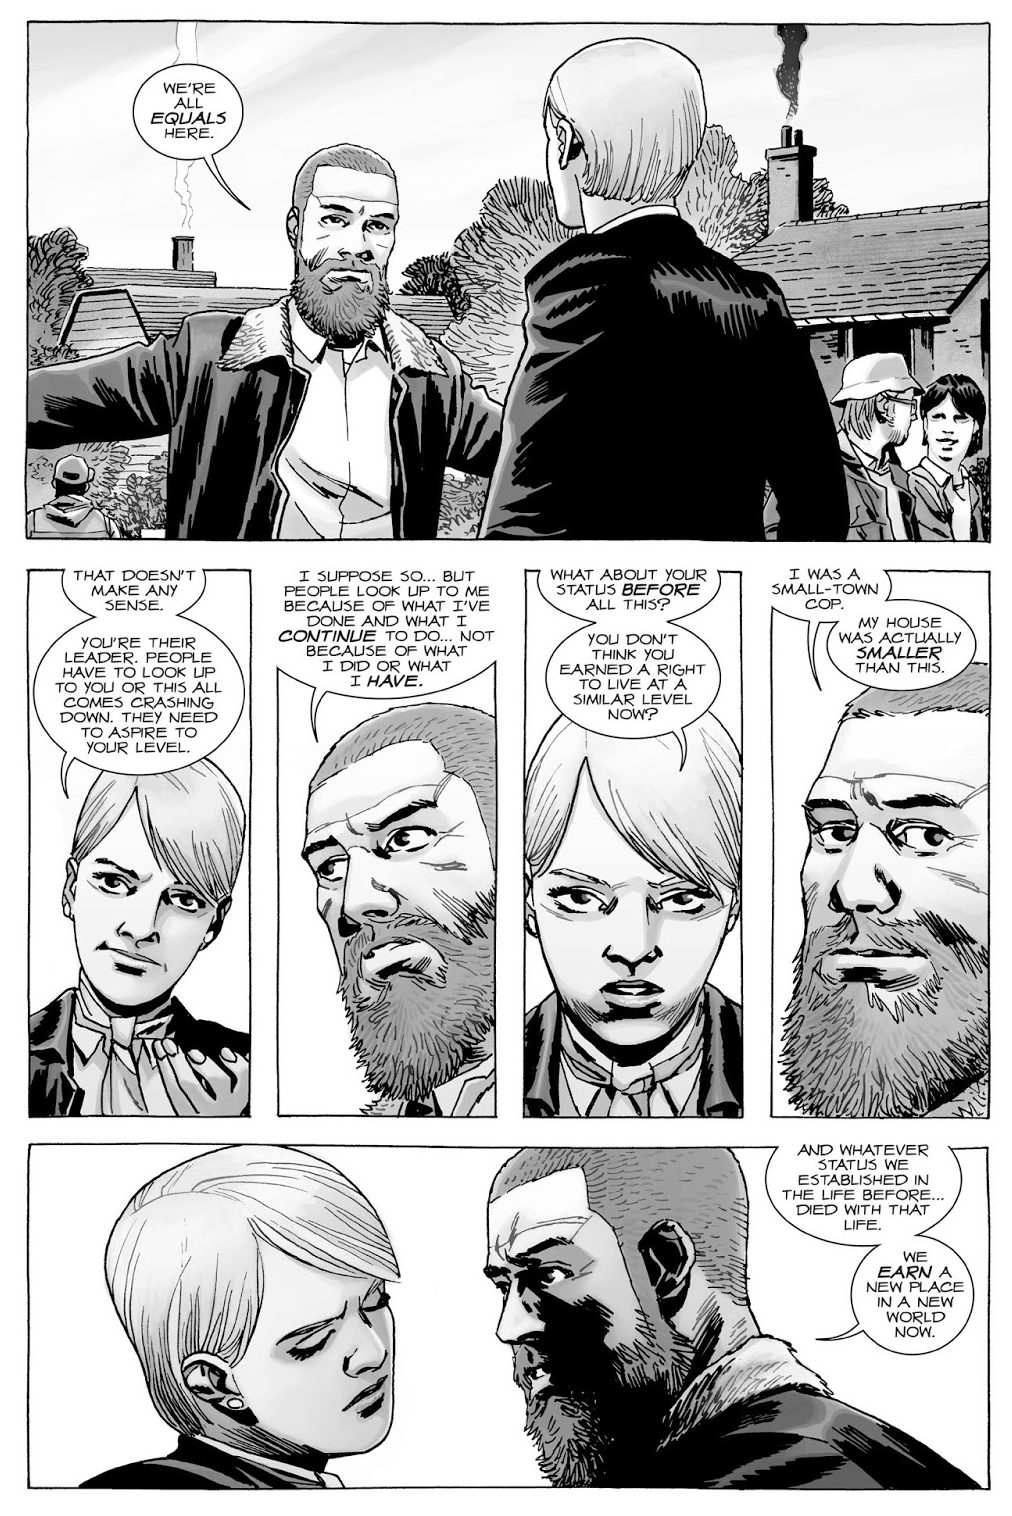 Rick Grimes And Pamela Milton's Different Governing Styles